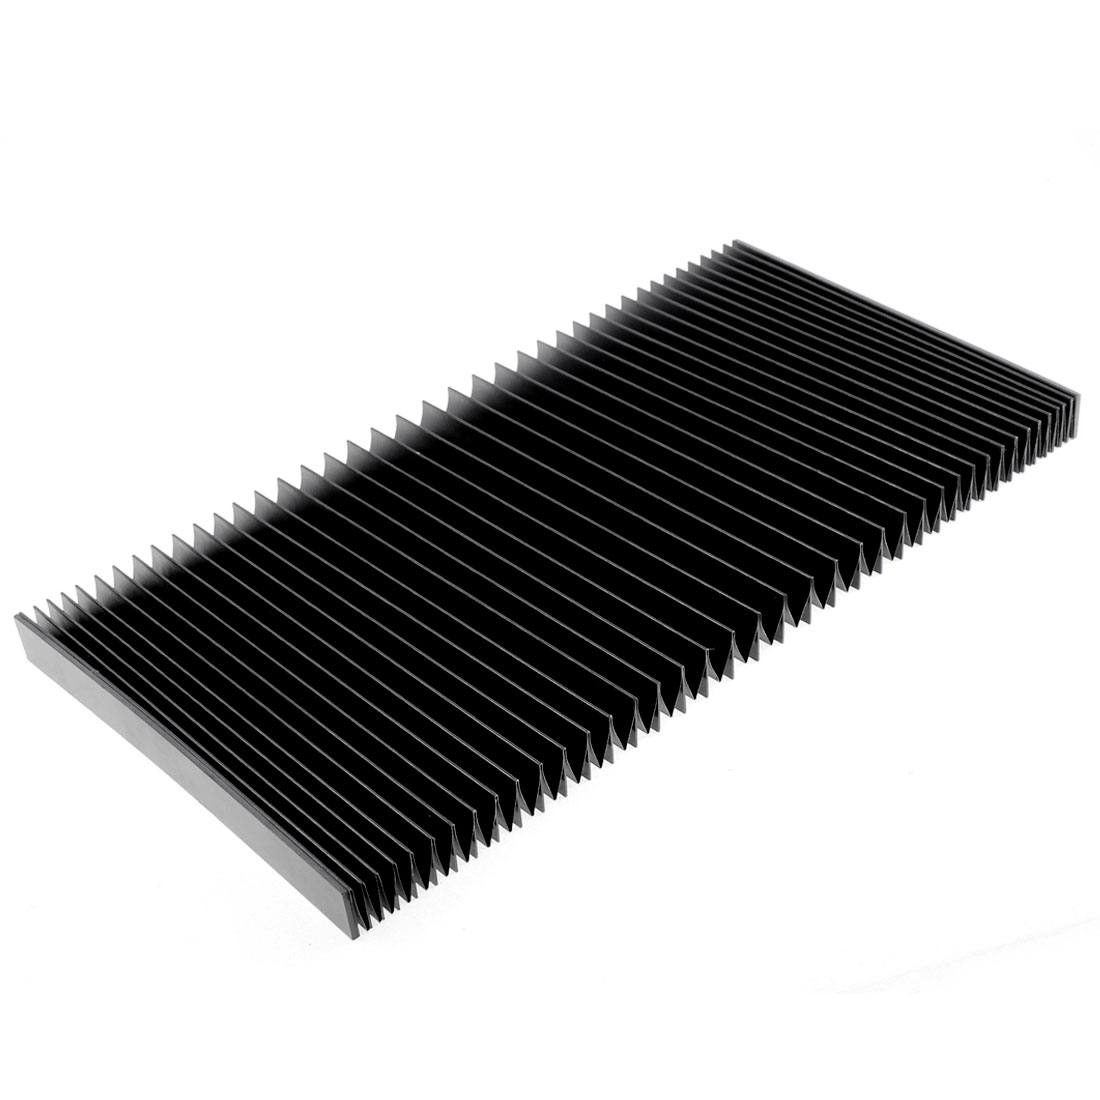 Protective Synthetic Rubber Rectangle Accordion Dust Cover 120cmx19cmx2cm